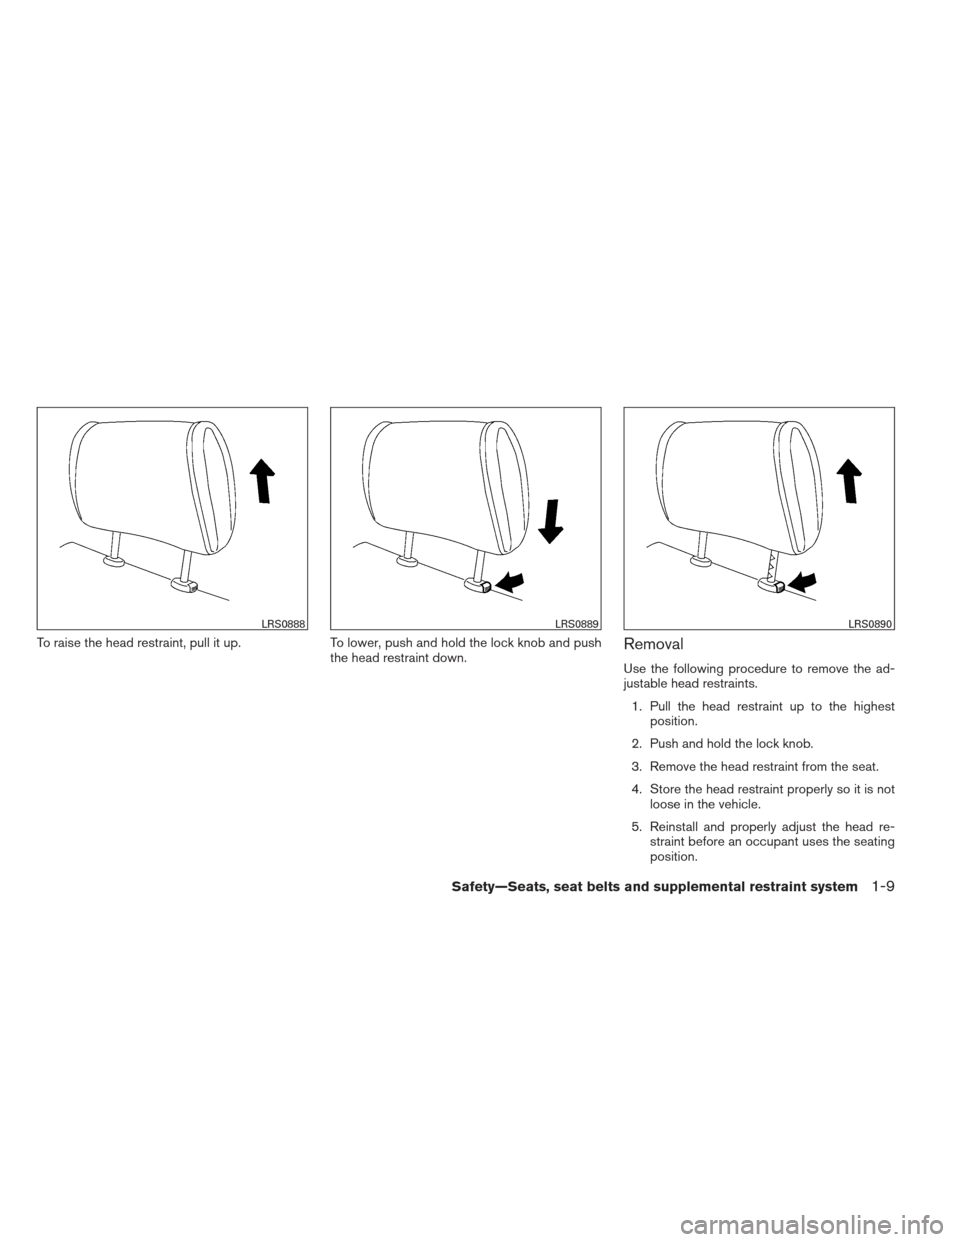 NISSAN ALTIMA 2013 L33 / 5.G Owners Manual To raise the head restraint, pull it up.To lower, push and hold the lock knob and push the head restraint down.Removal Use the following procedure to remove the ad- justable head restraints. 1. Pull t